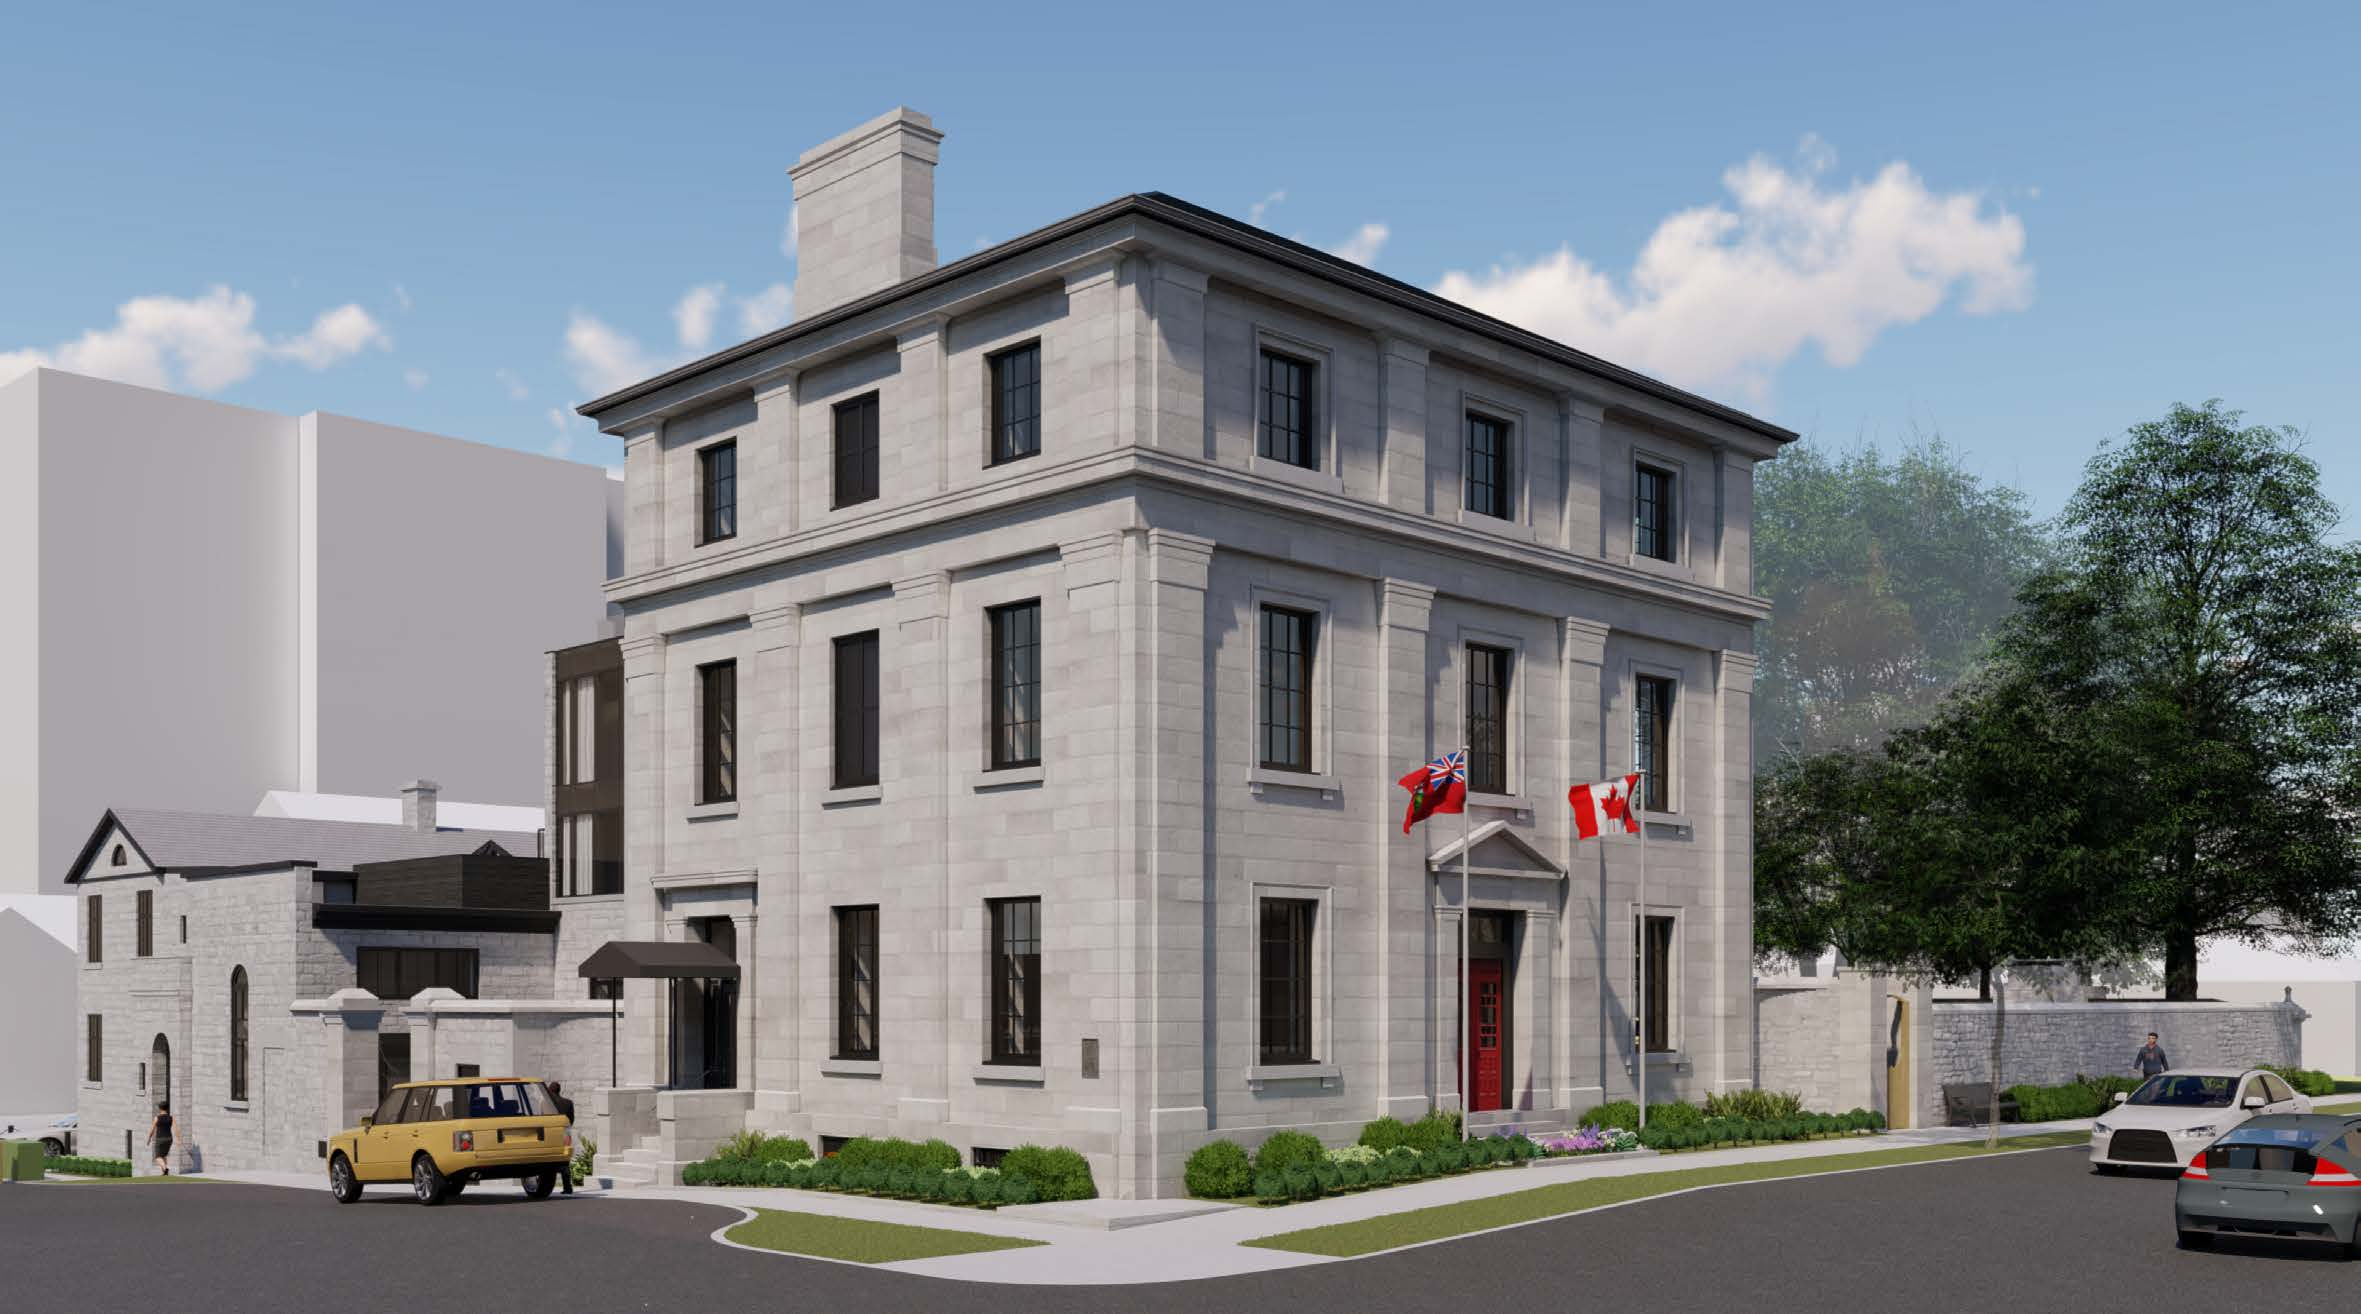 Rendering of the updated exterior on King and William Street